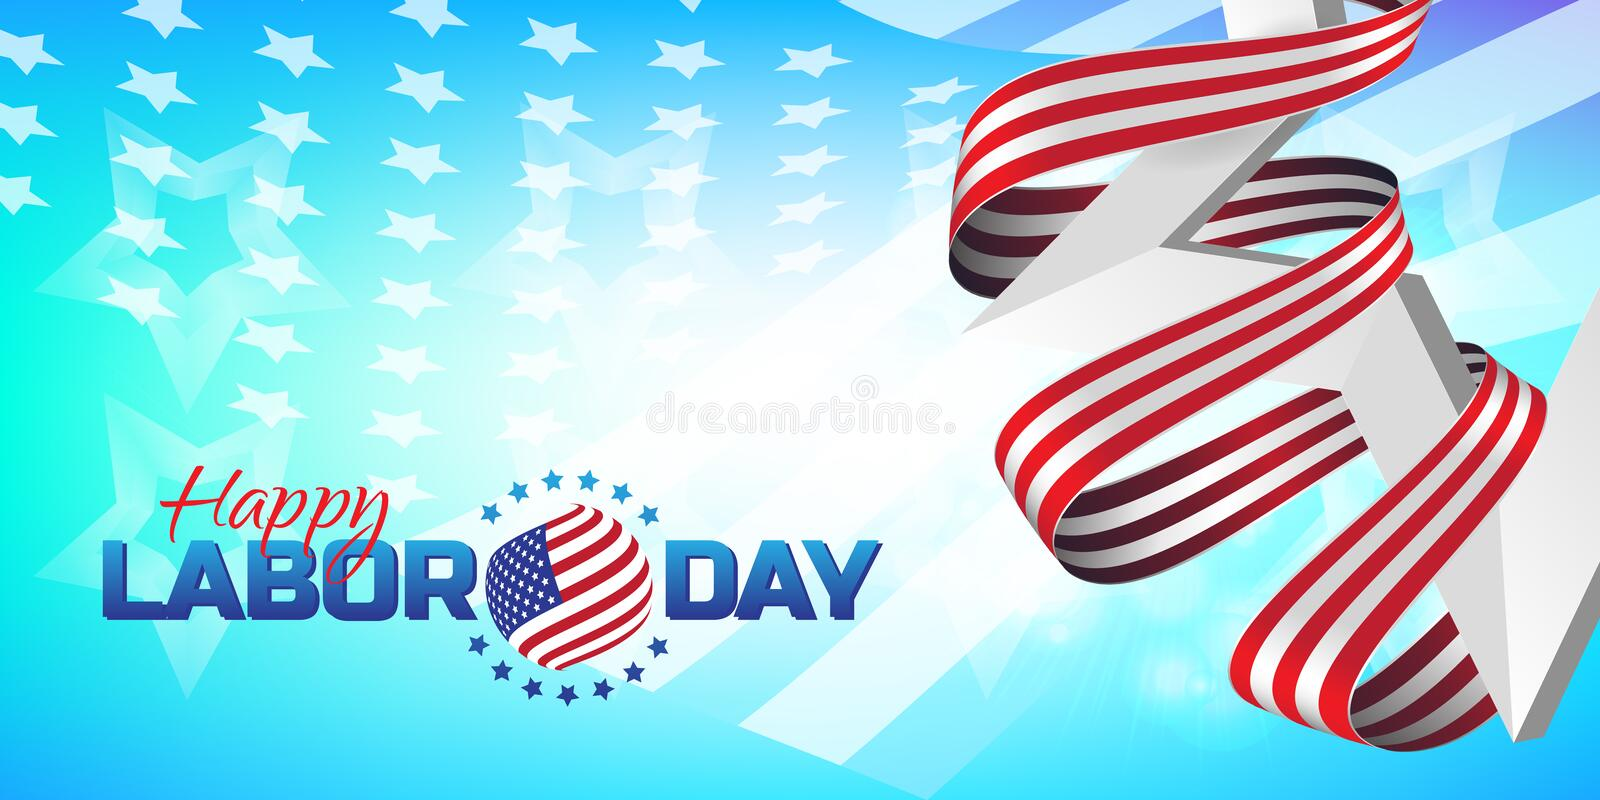 Greeting card or banner in horizontal orientation to Happy Labor Day with white star and striped ribbon vector illustration